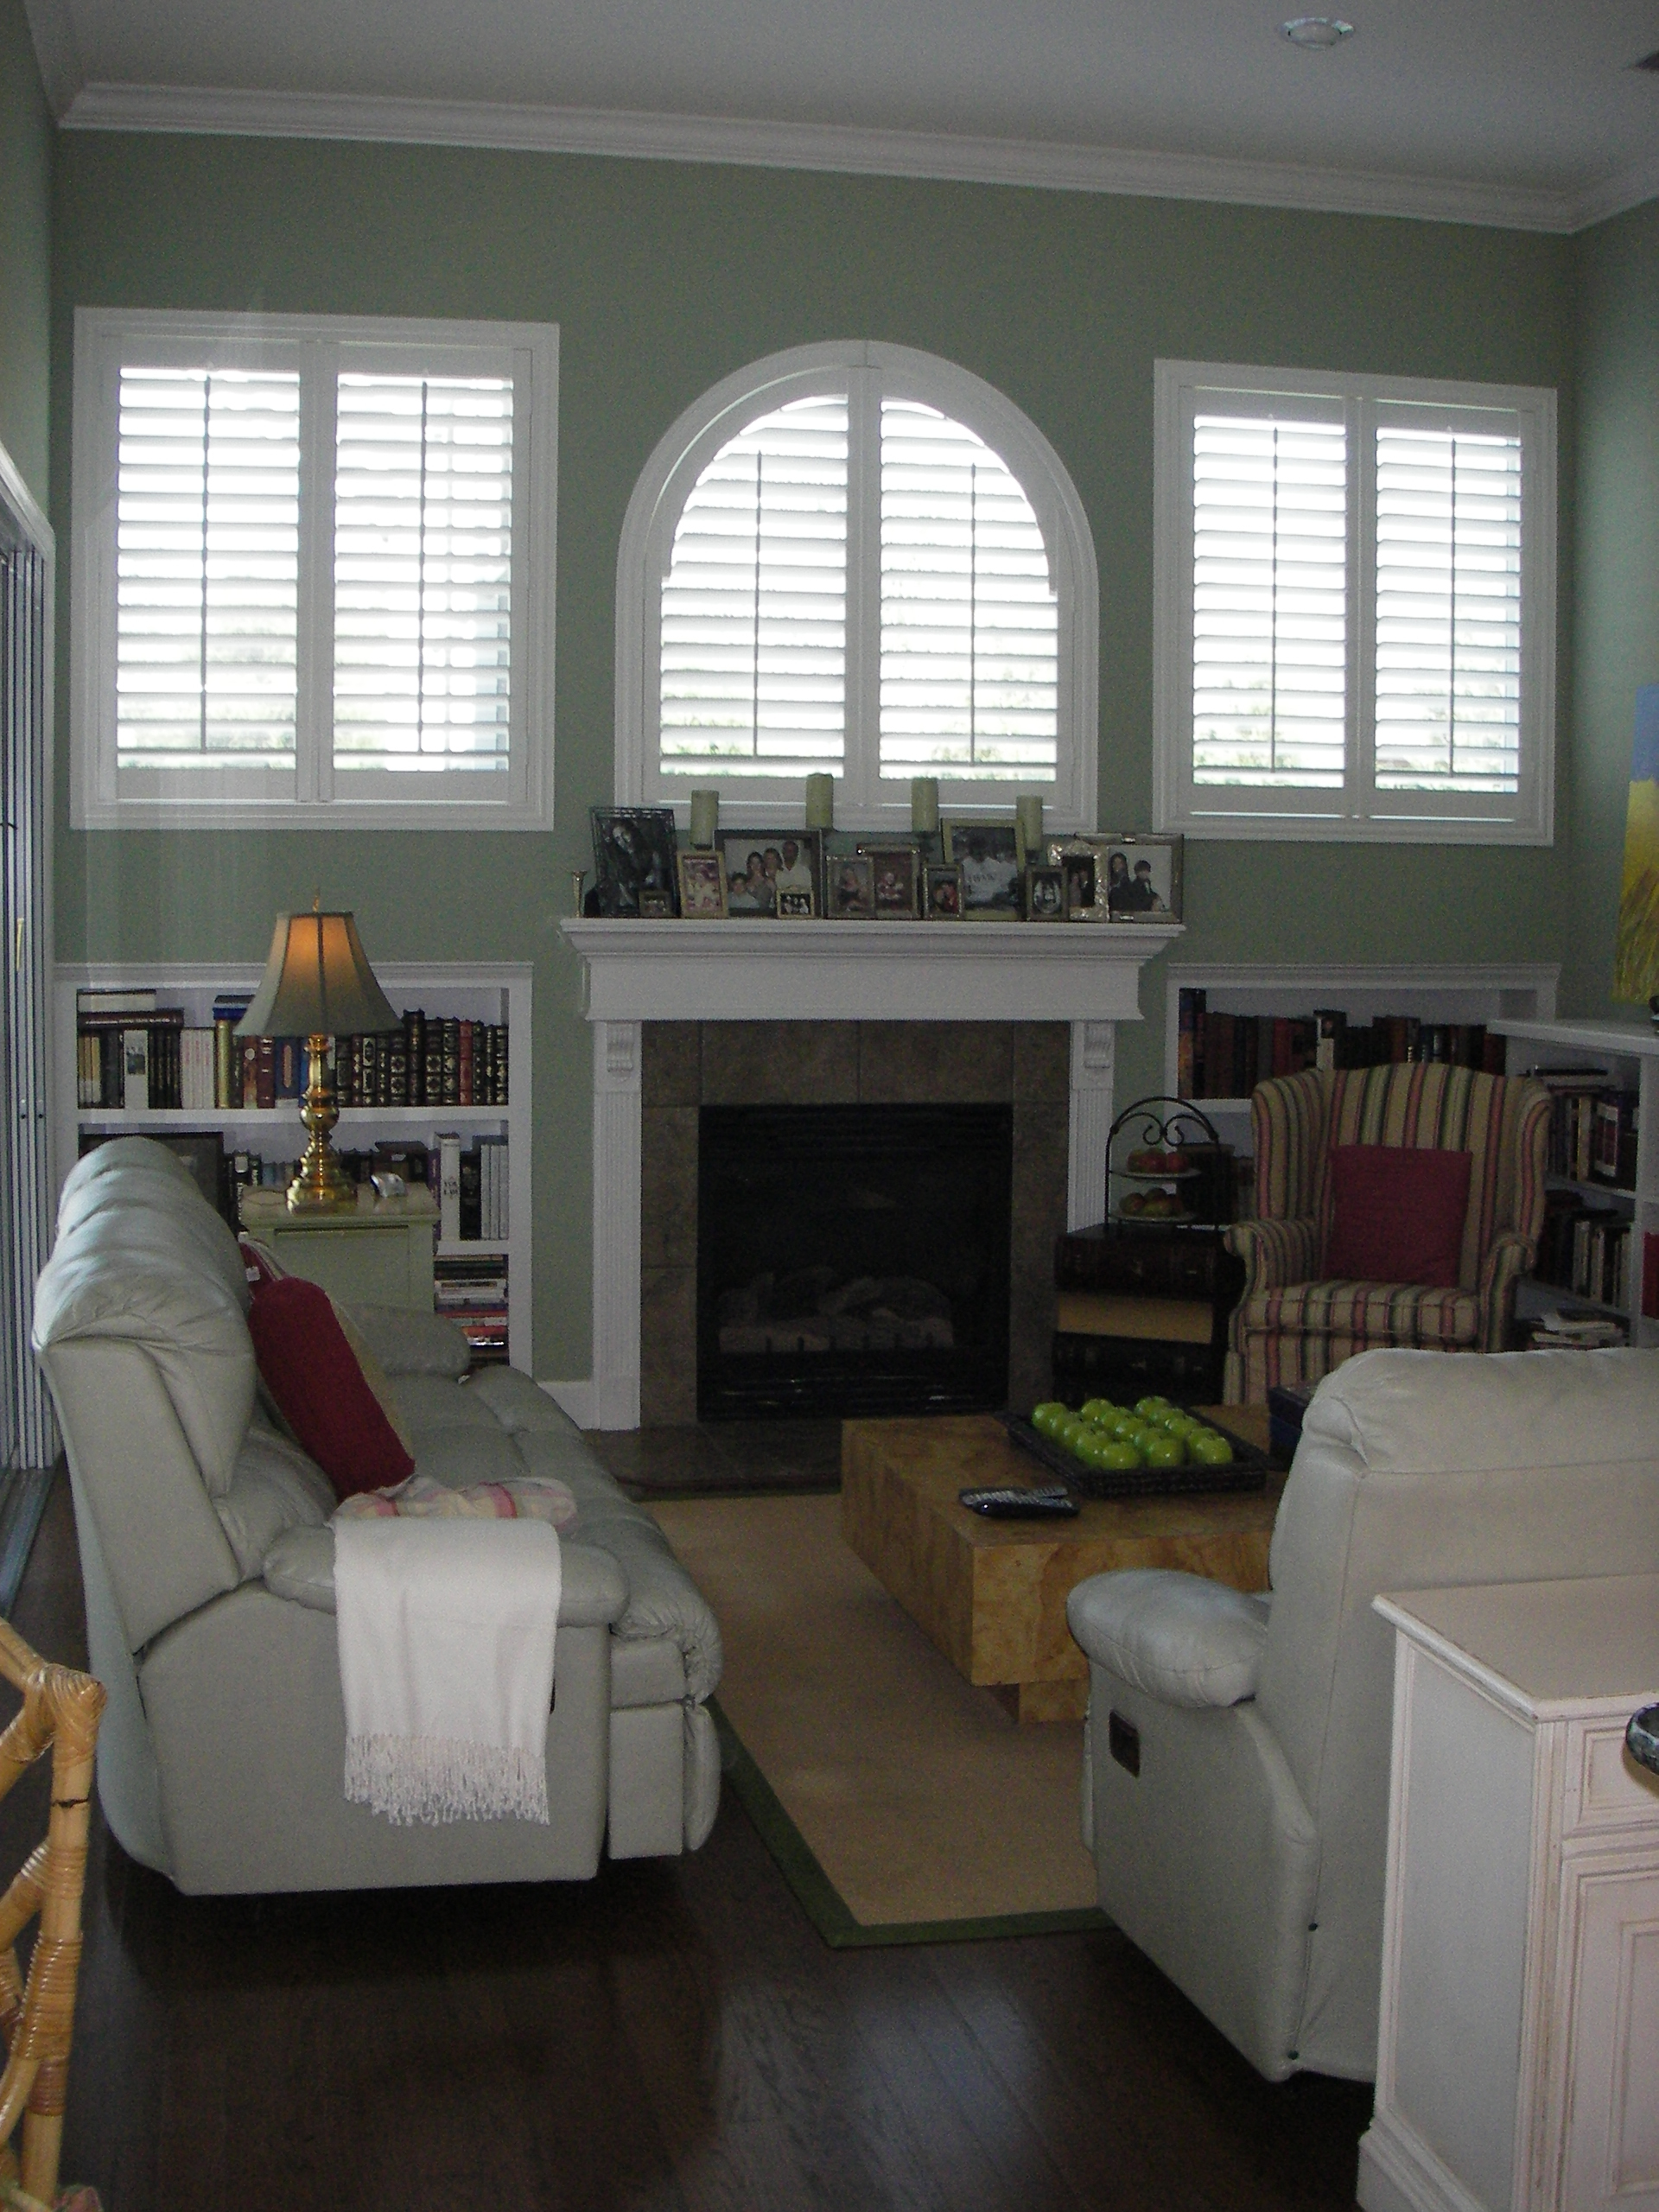 Coastal Shutters & Window Treatments Inc. image 46